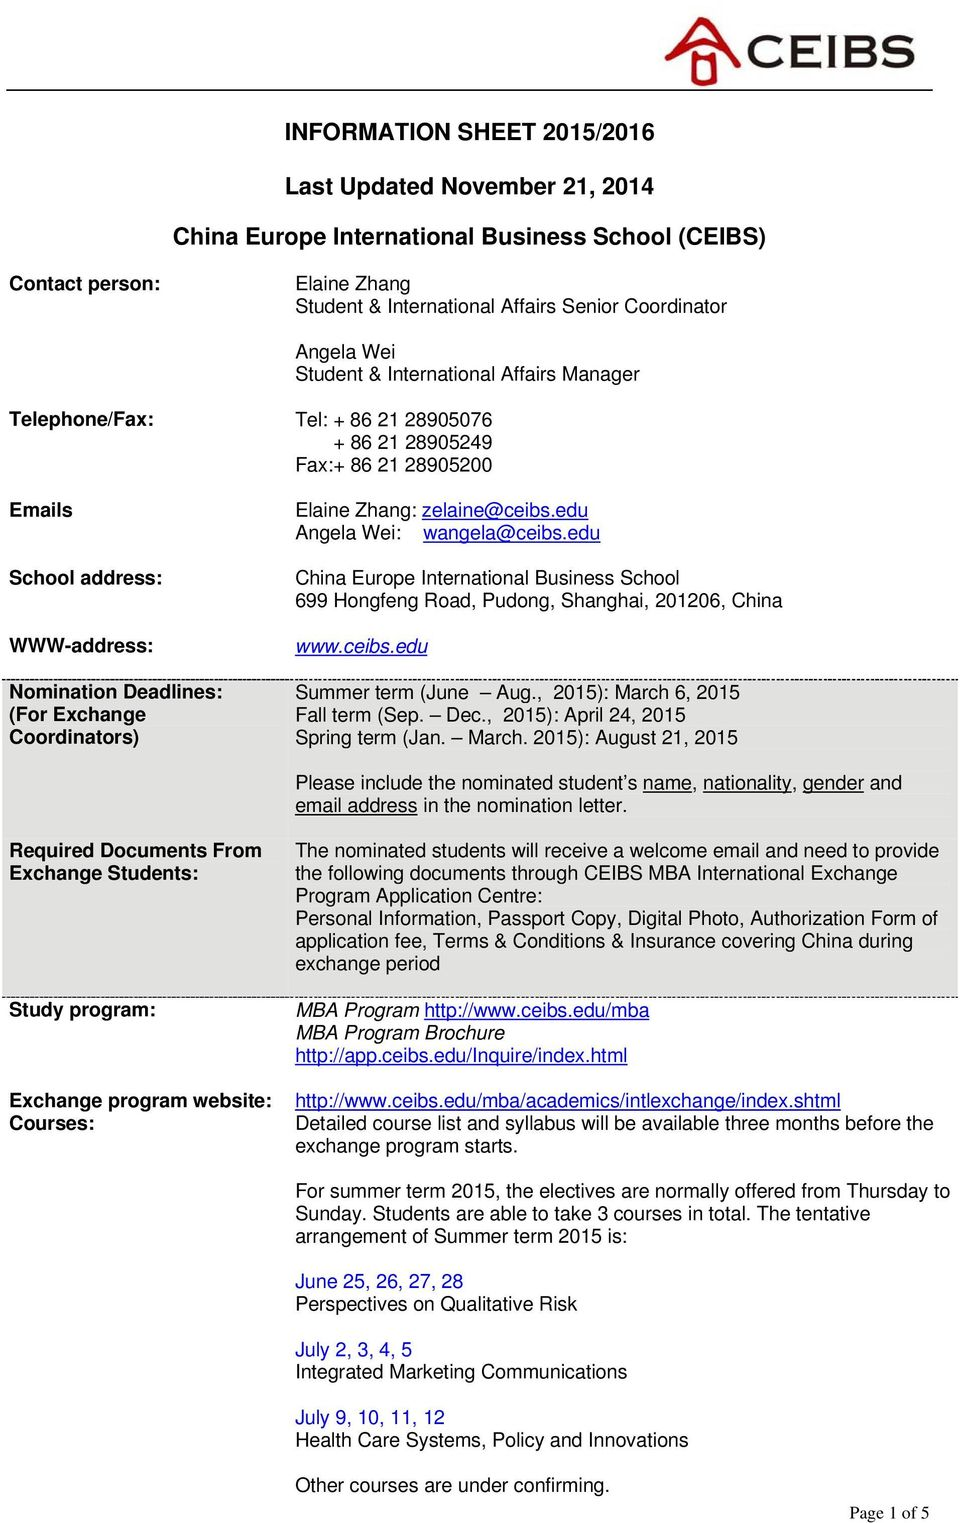 Coordinators) Elaine Zhang: zelaine@ceibs.edu Angela Wei: wangela@ceibs.edu China Europe International Business School 699 Hongfeng Road, Pudong, Shanghai, 201206, China www.ceibs.edu Summer term (June Aug.